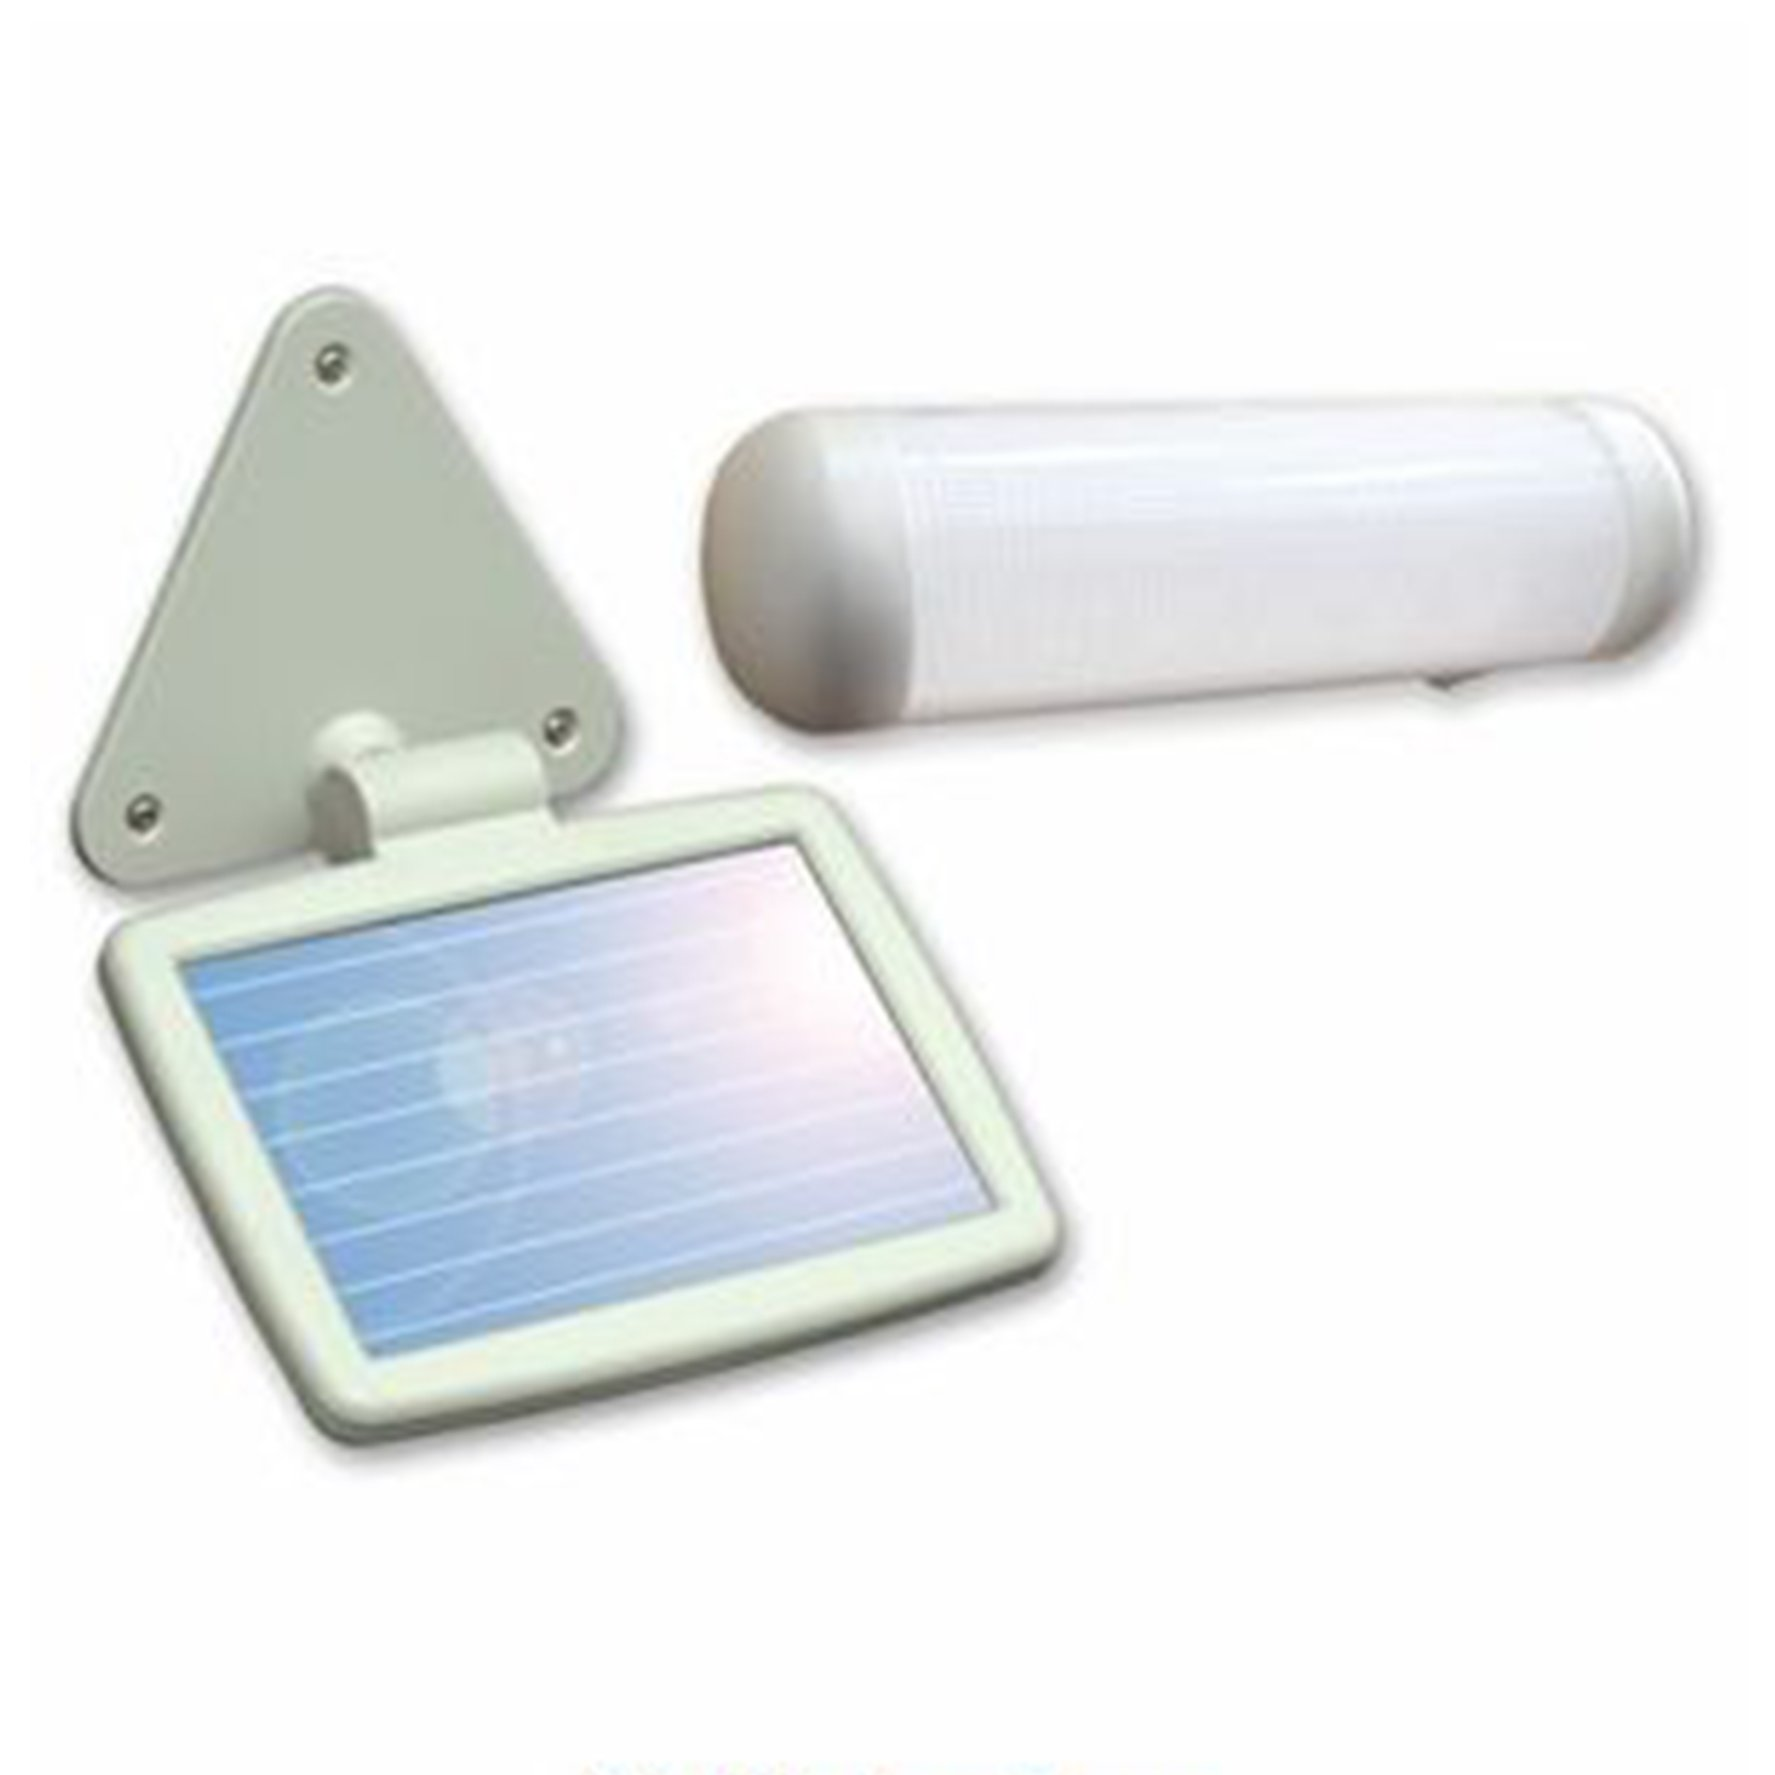 SUNFORCE PRODUCTS 81095 5LED Solar Shed Light by Sunforce (Image #1)